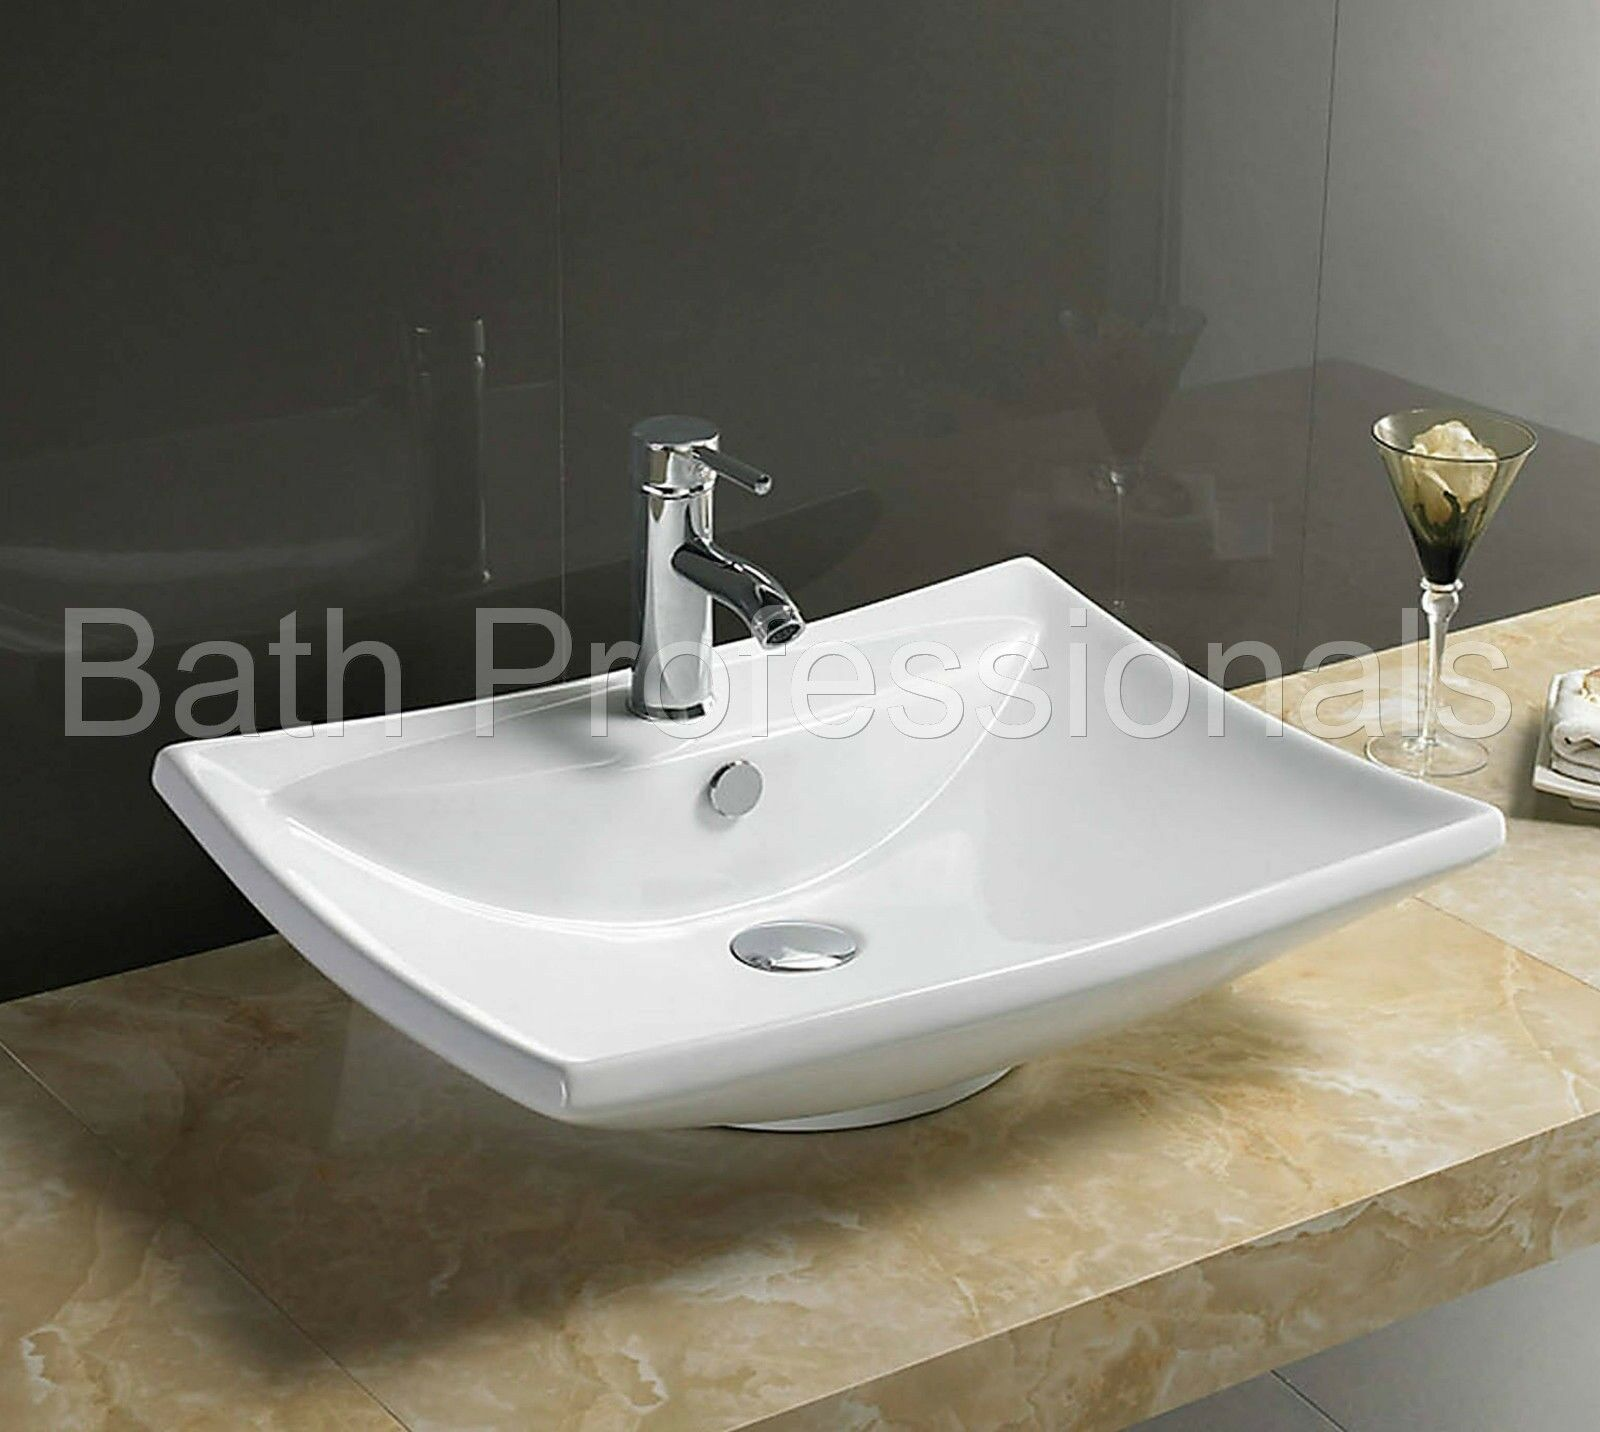 Best Countertops For Bathroom: Basin Sink Countertop Ceramic Bathroom Cloakroom Wall Hung